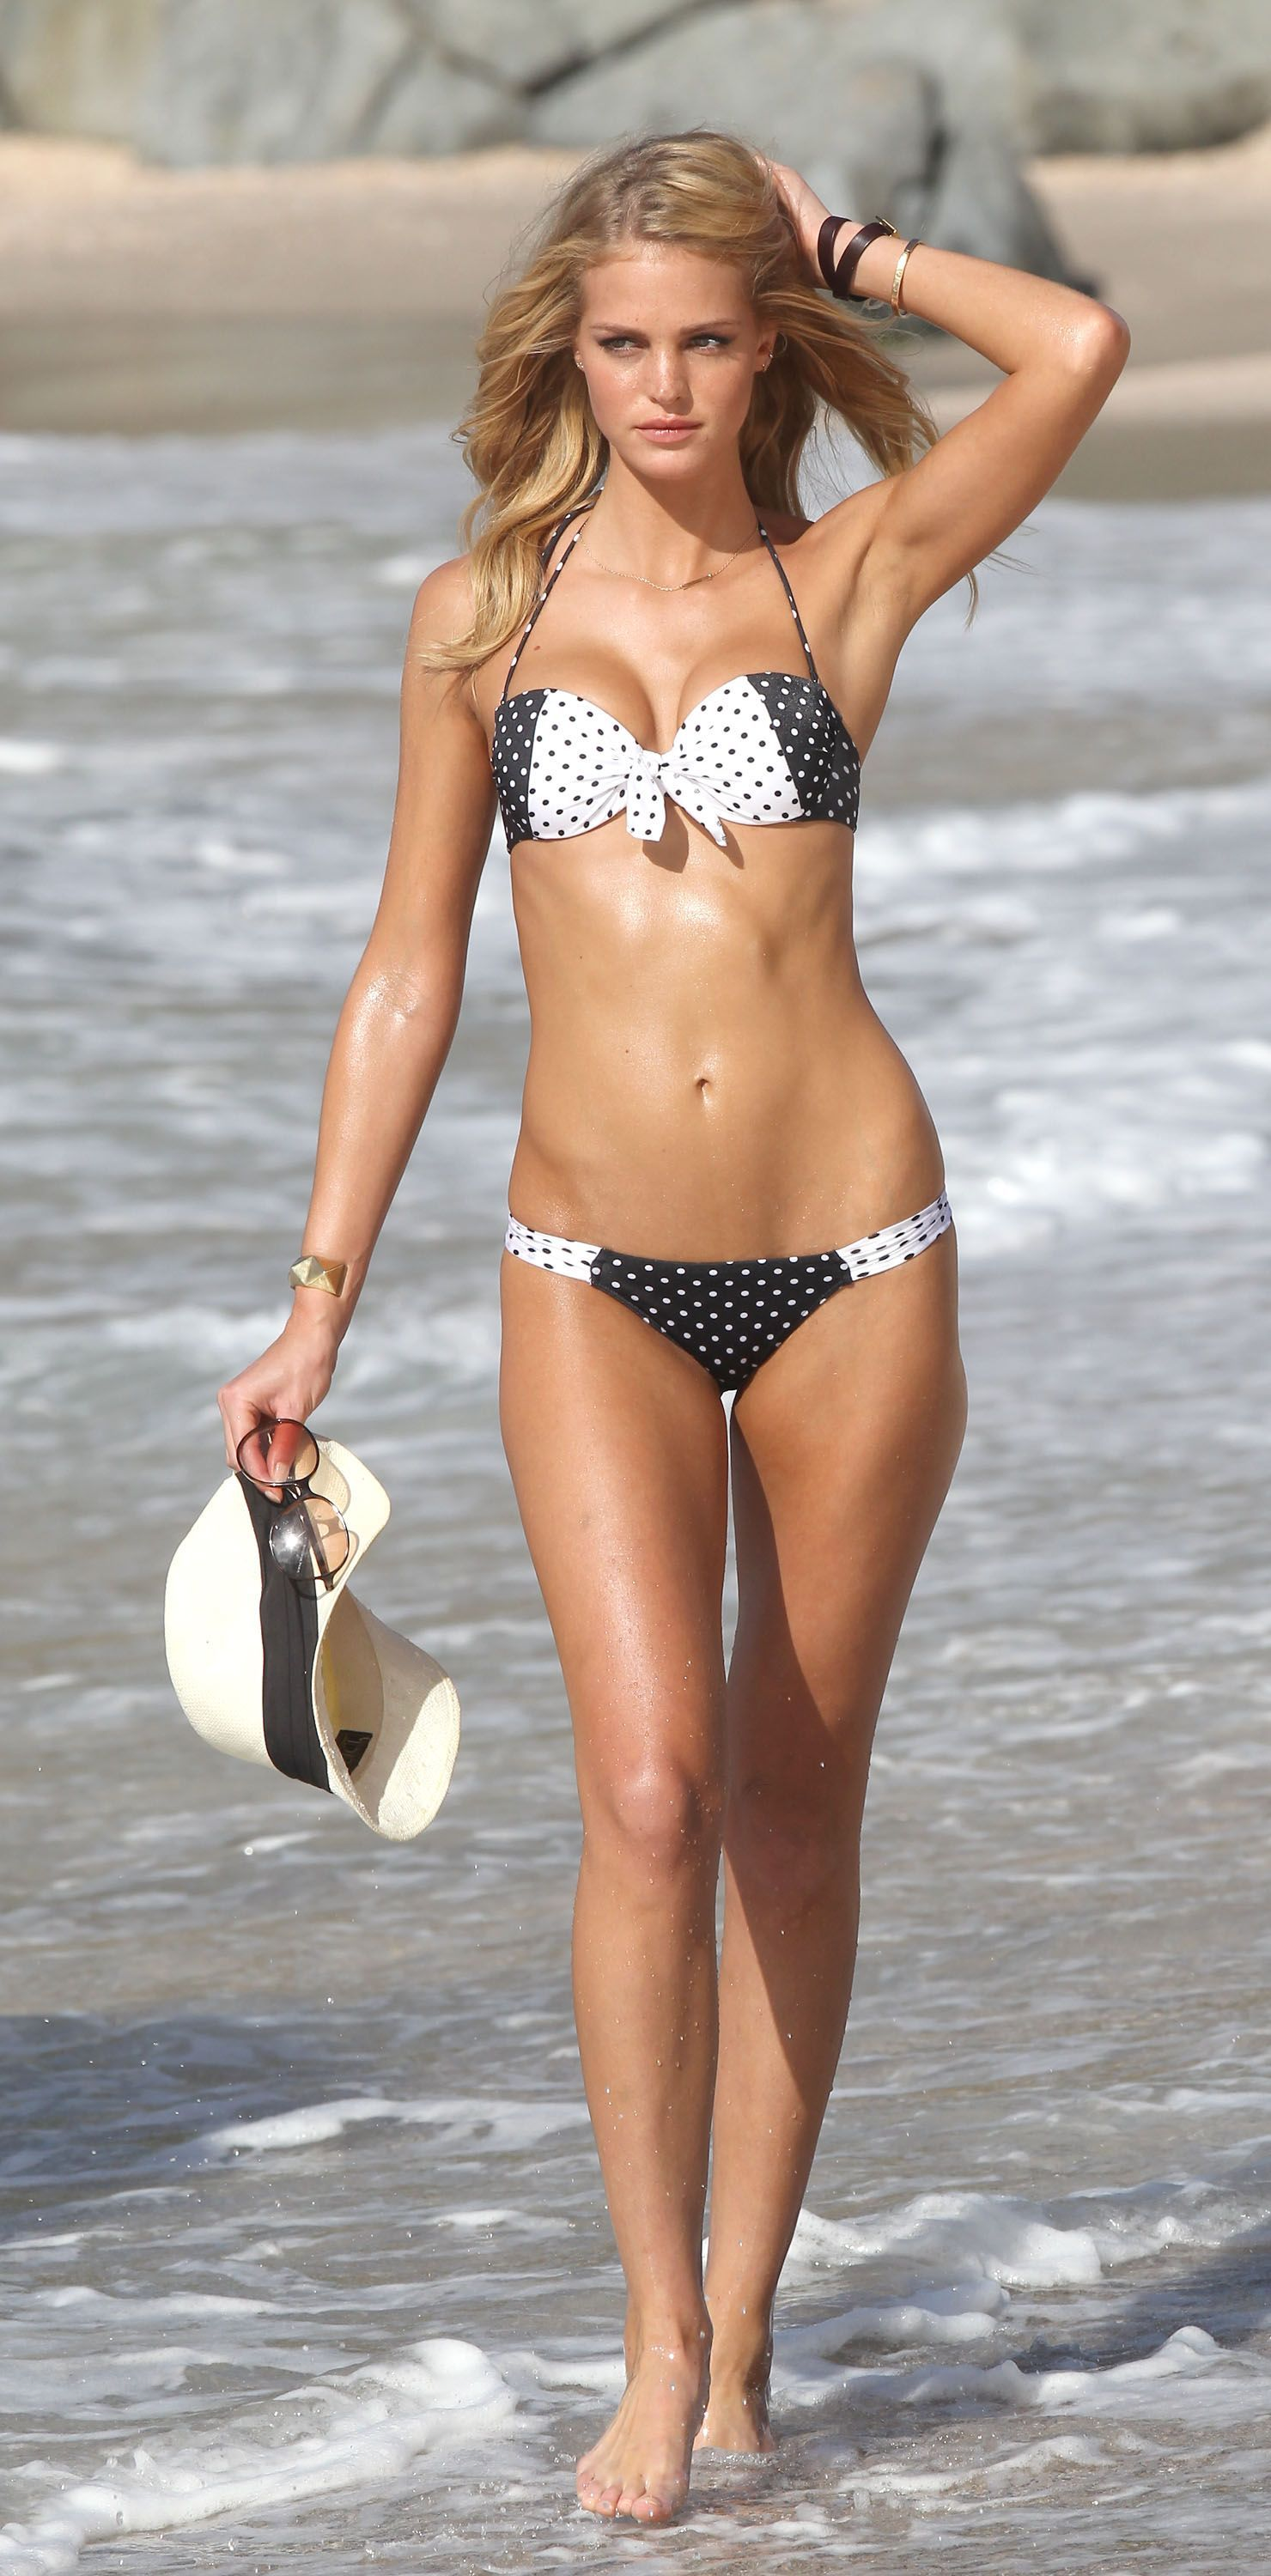 e1444383f2c Erin Heatherton Shows Off Her Bikini Body - Fab Fashion Fix Victoria Secret  Bikini